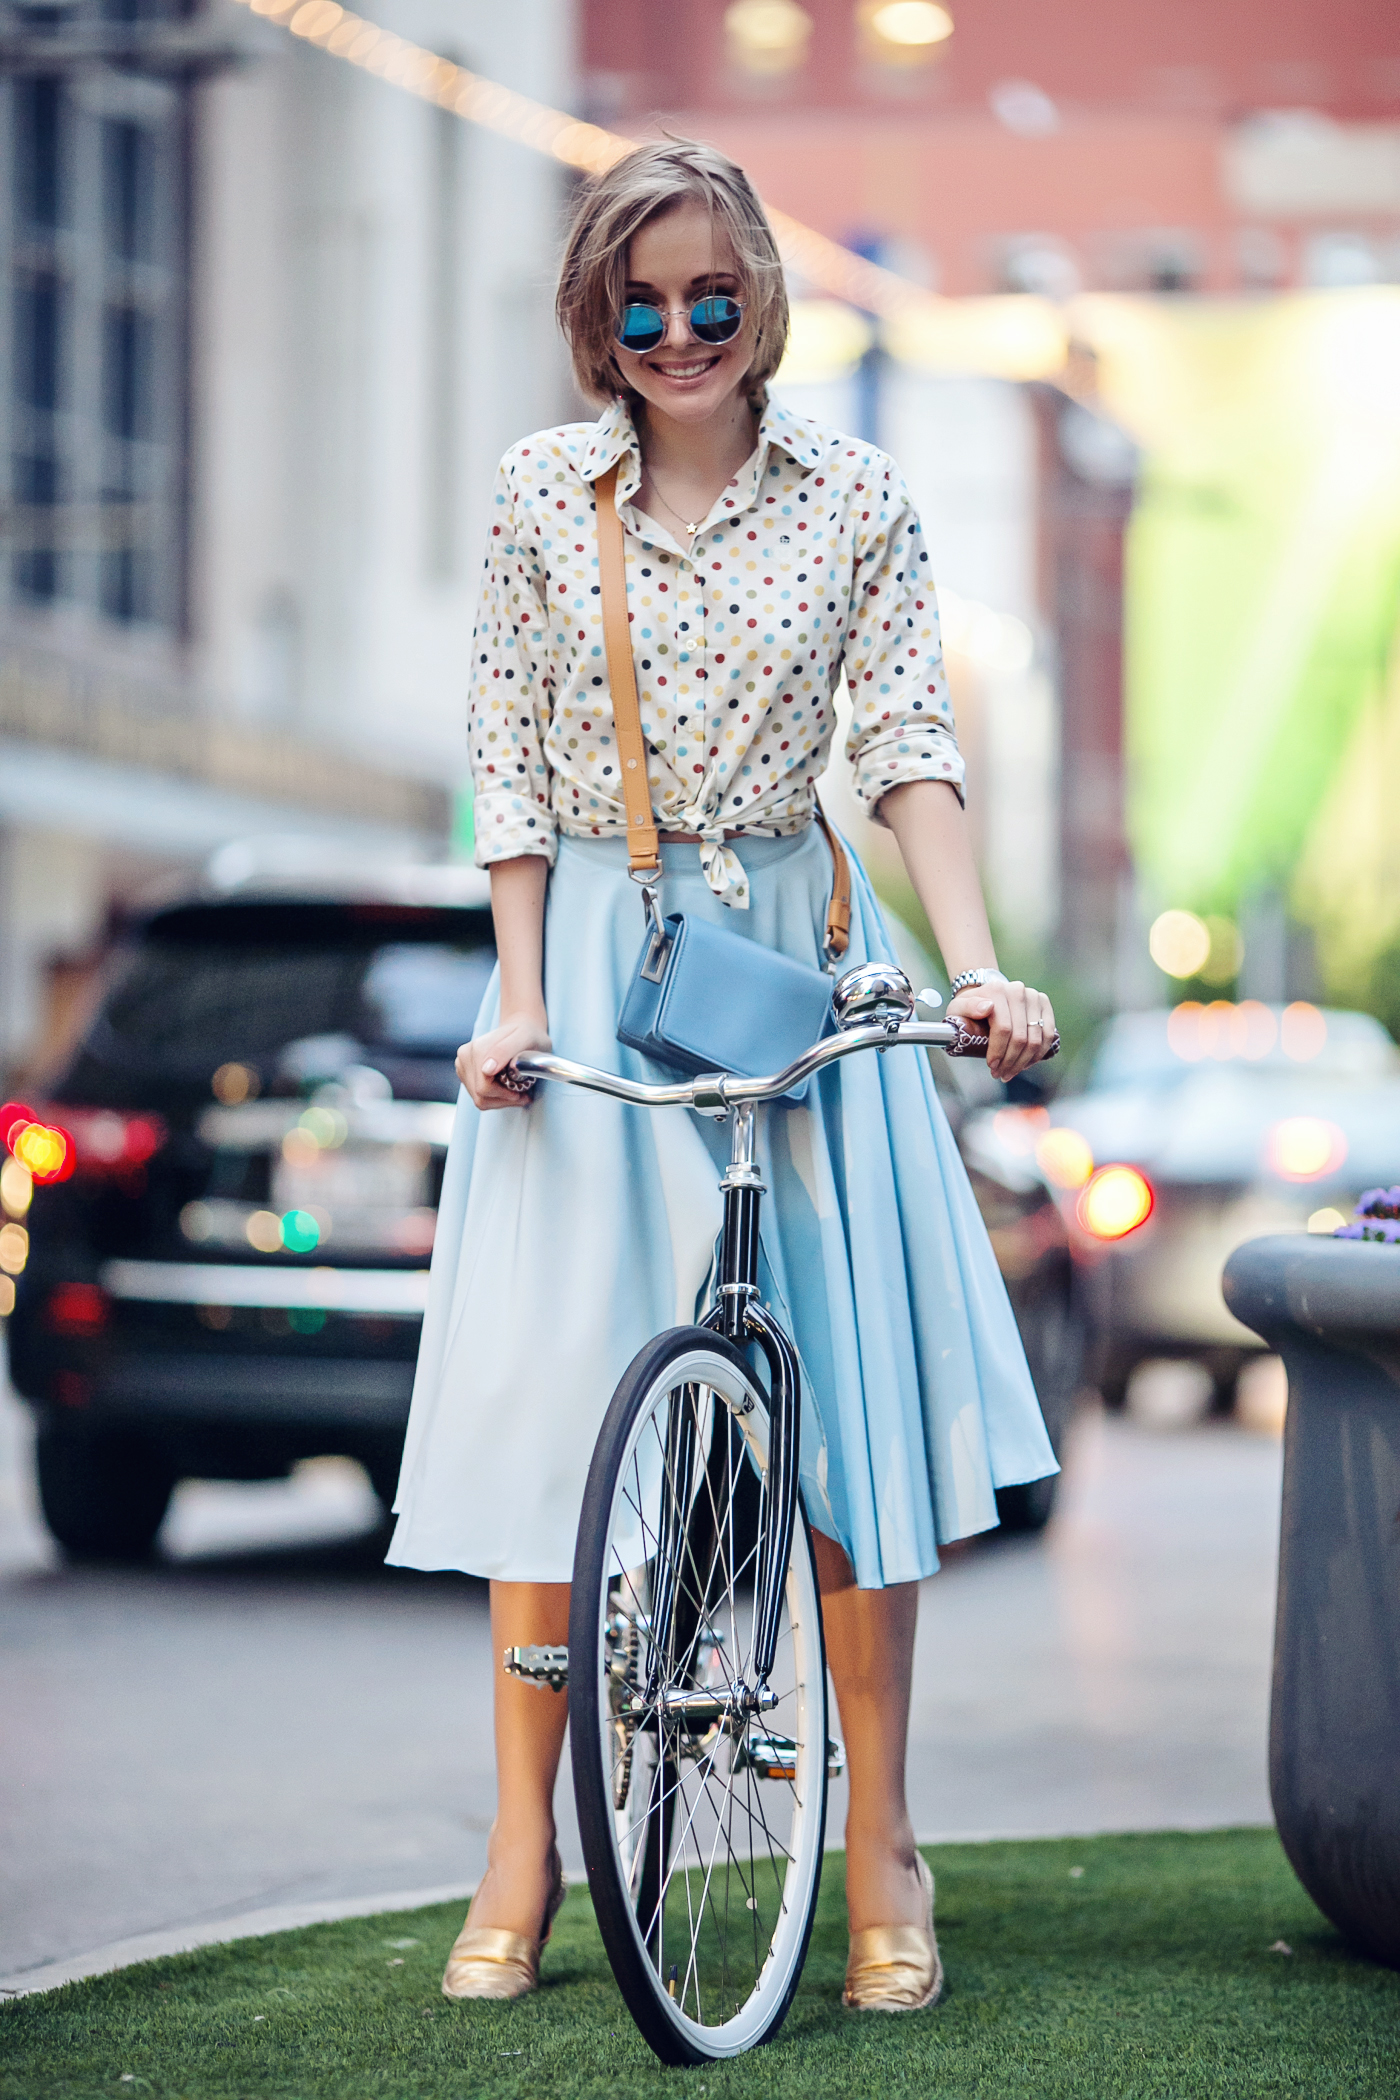 darya kamalova a fashion blogger from thecablook in dallas texas on the bycicle in polka dot shirt and blue skirt with gold espadrilles and other storie bag for rewardstyle rsthecon-30 copy